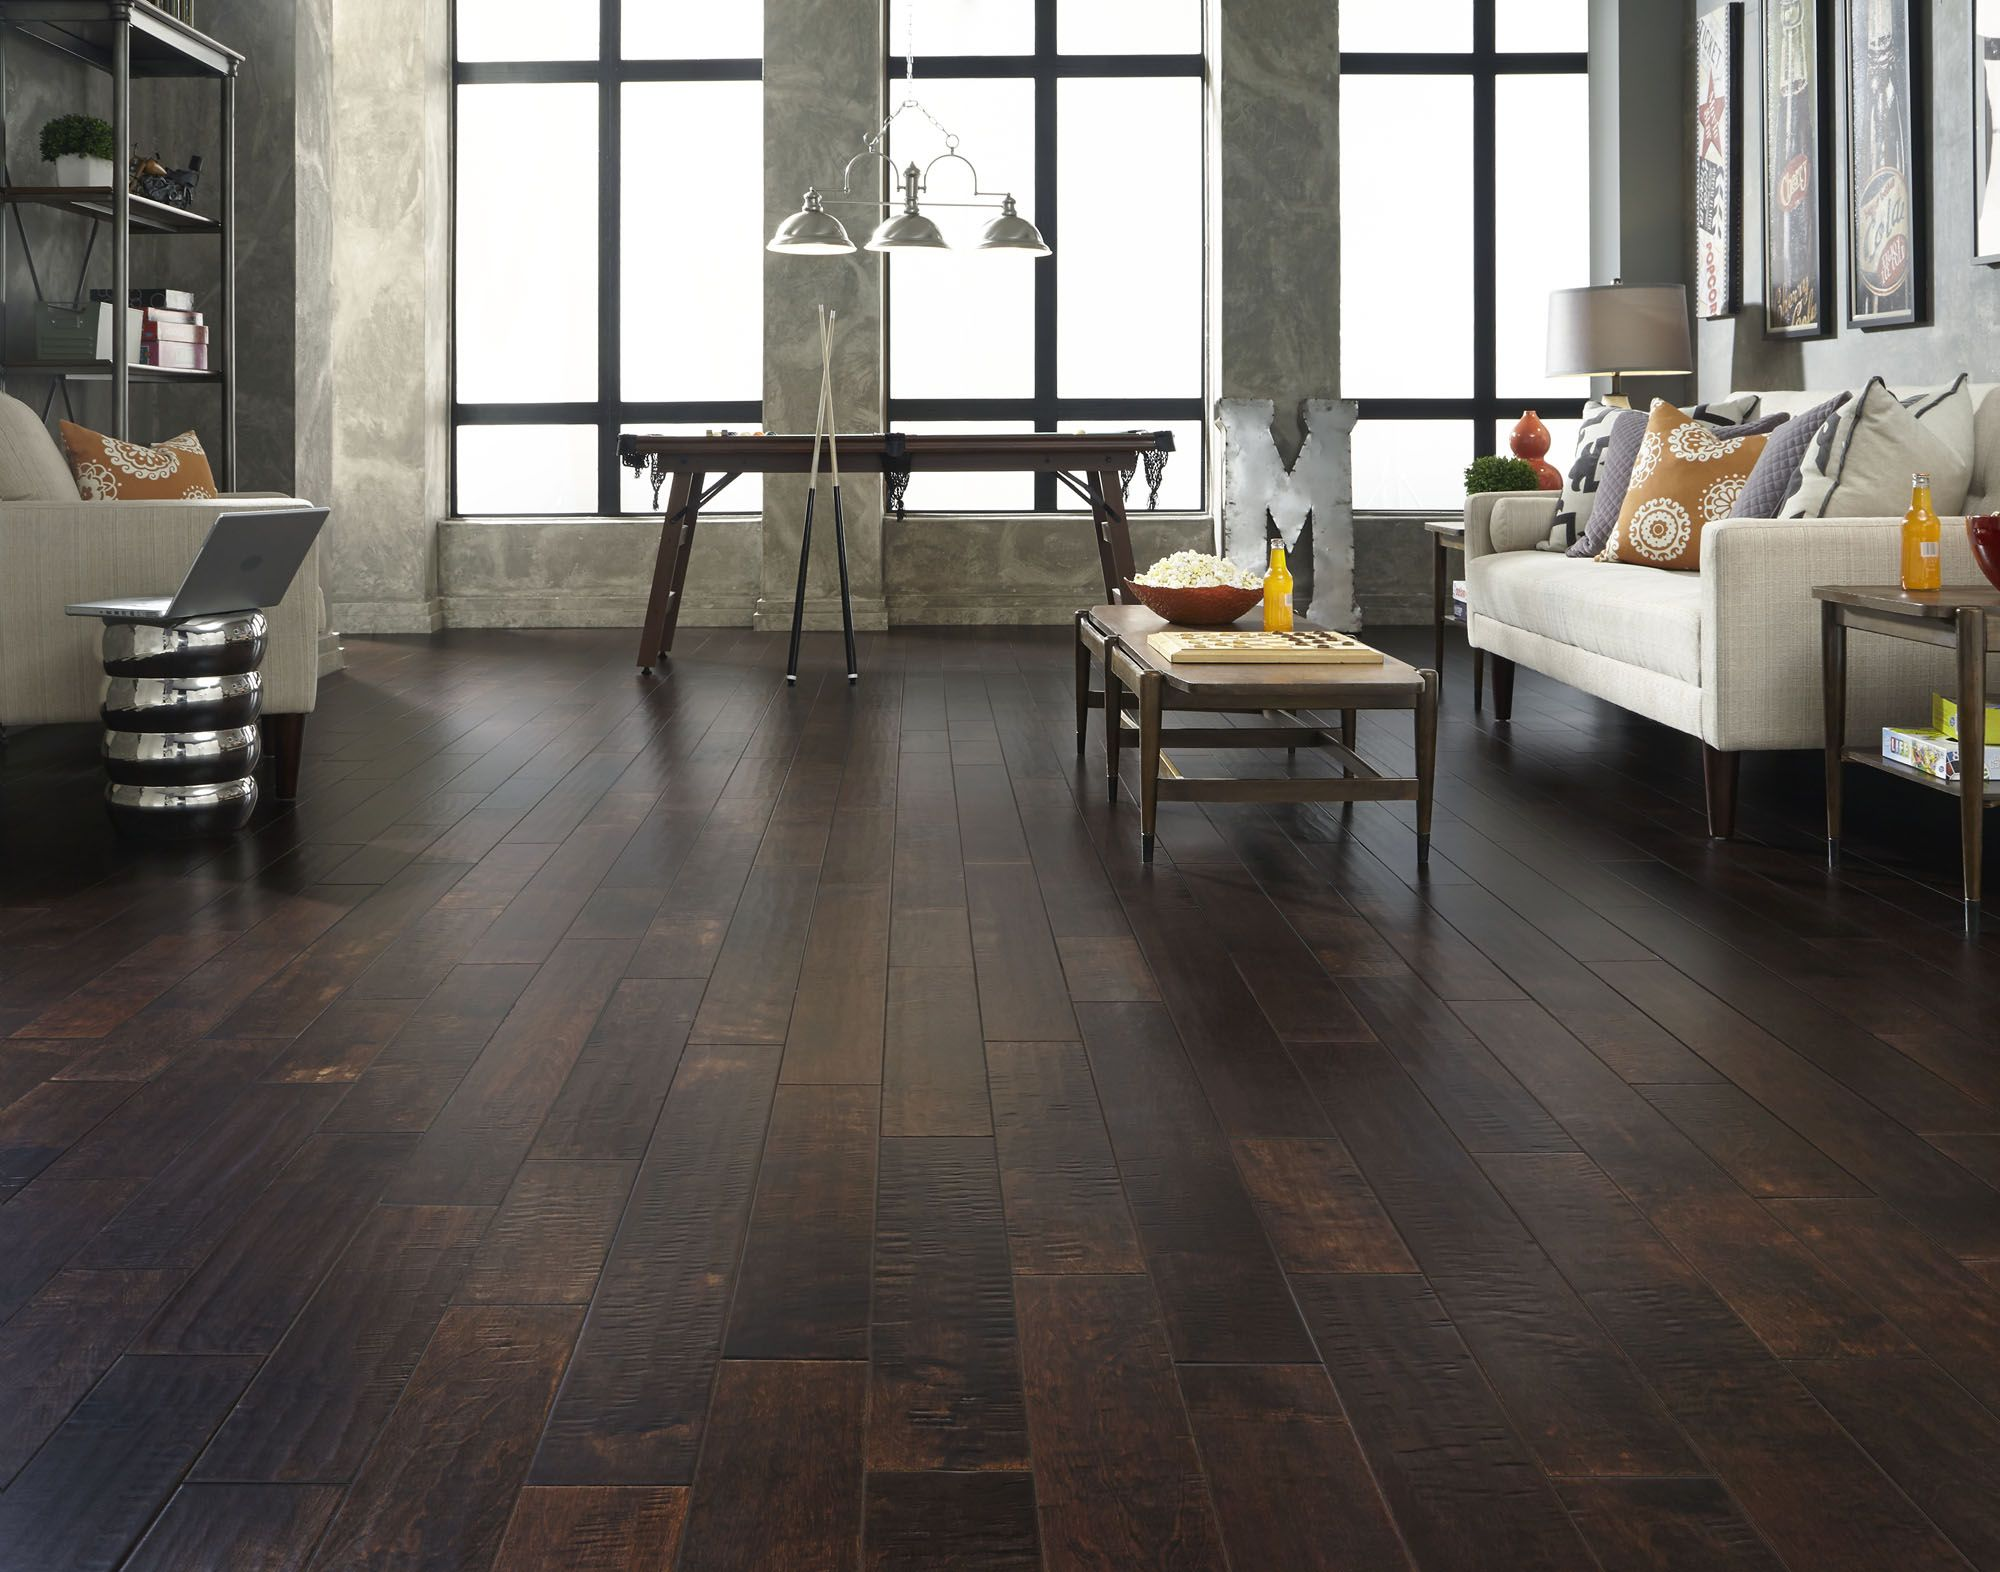 Find This Pin And More On Hardwood Floors. Virginia Mill Works ...